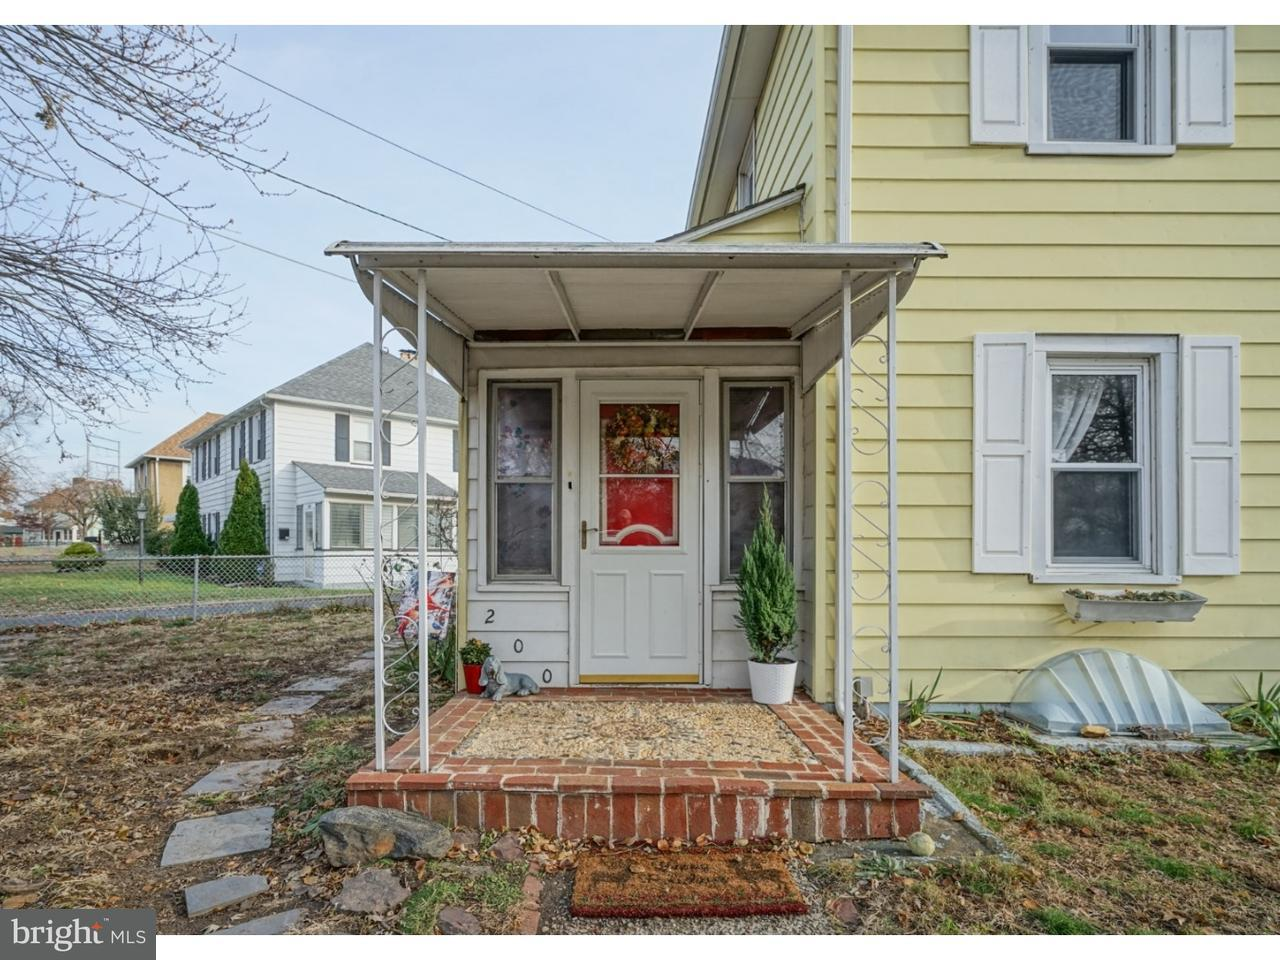 Townhouse for Sale at 200 PENNSYLVANIA Road Brooklawn, New Jersey 08030 United States